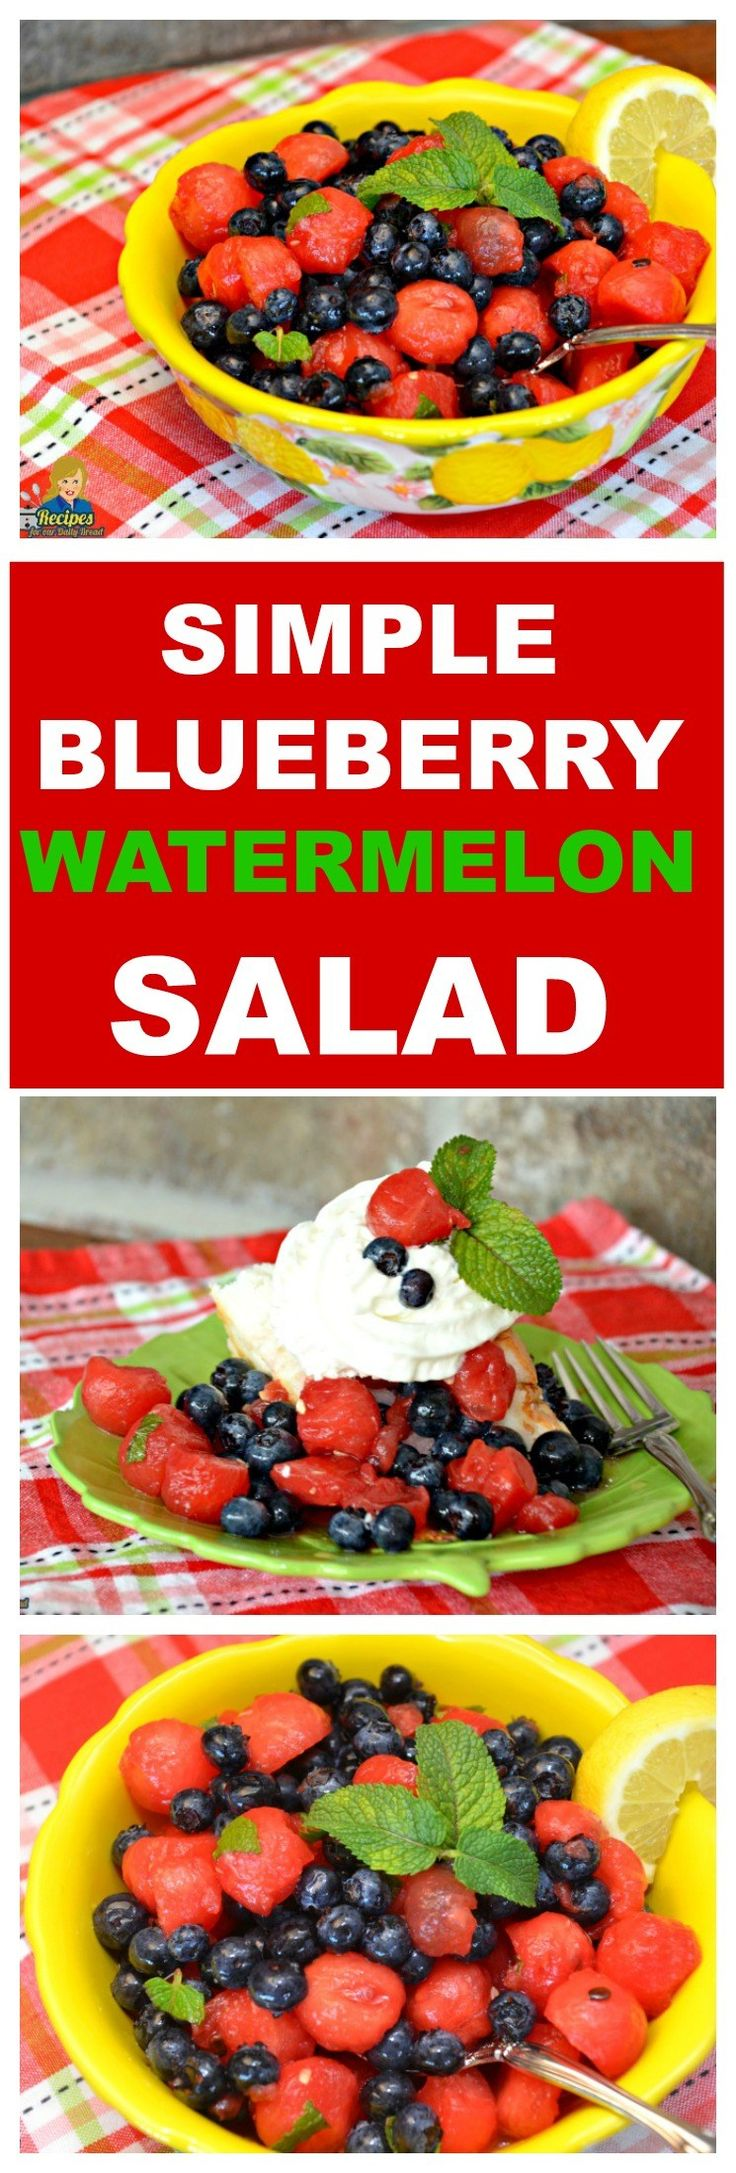 EASY SIMPLE SUMMER BLUEBERRY WATERMELON SALAD You cannot celebrate summer without cold watermelon. I am going to show you how to make an easy Watermelon salad to enjoy on a hot summer day. SEE FULL RECIPE HERE: http://recipesforourdailybread.com/blueberry-watermelon-salad/